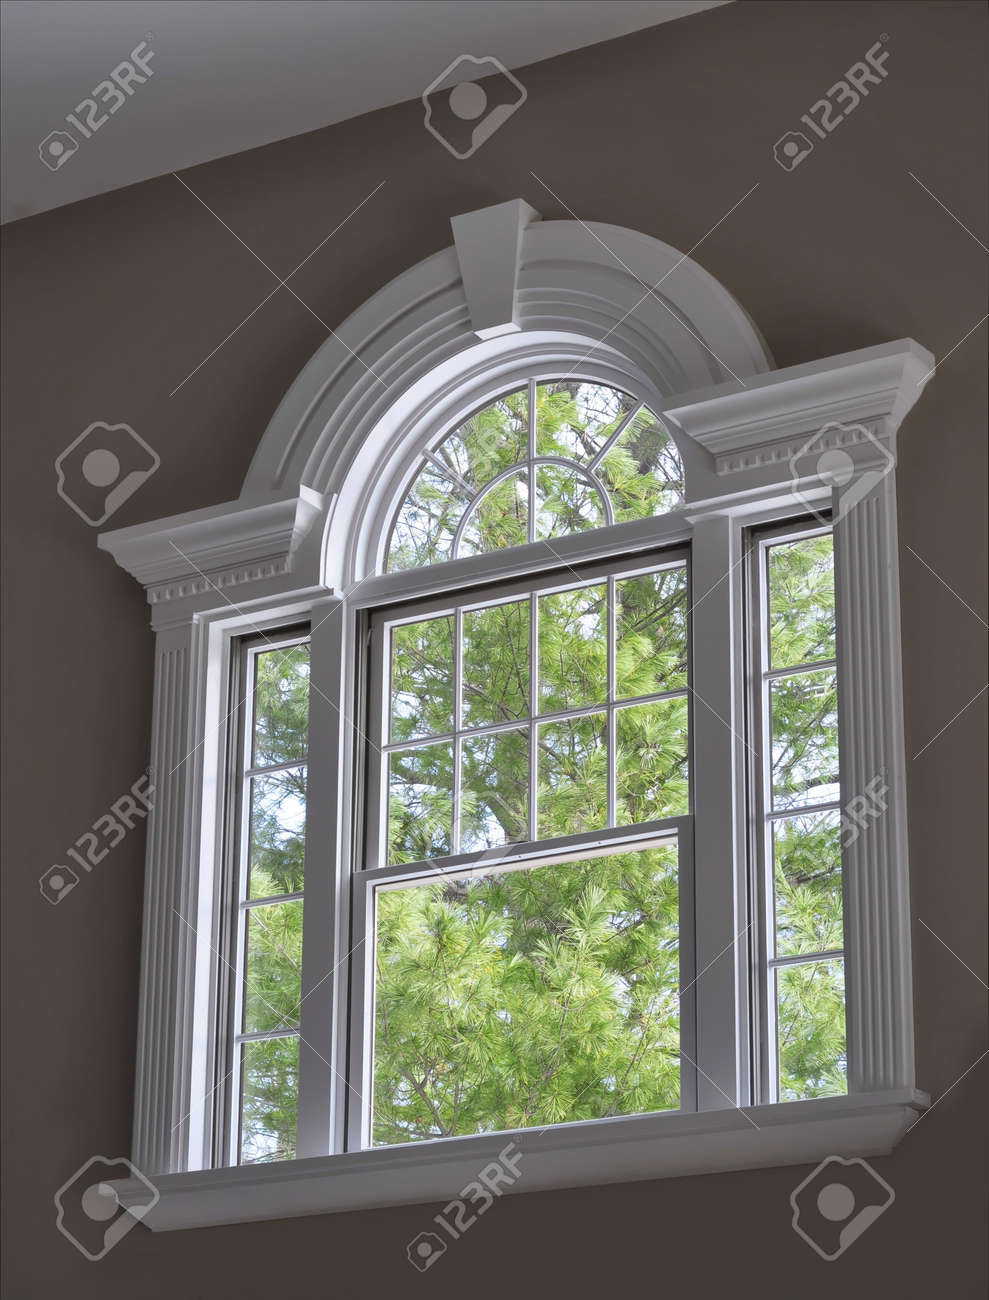 Arched Crown Moulding Arched Window With Ornate Molding Stock Photo Picture And Royalty